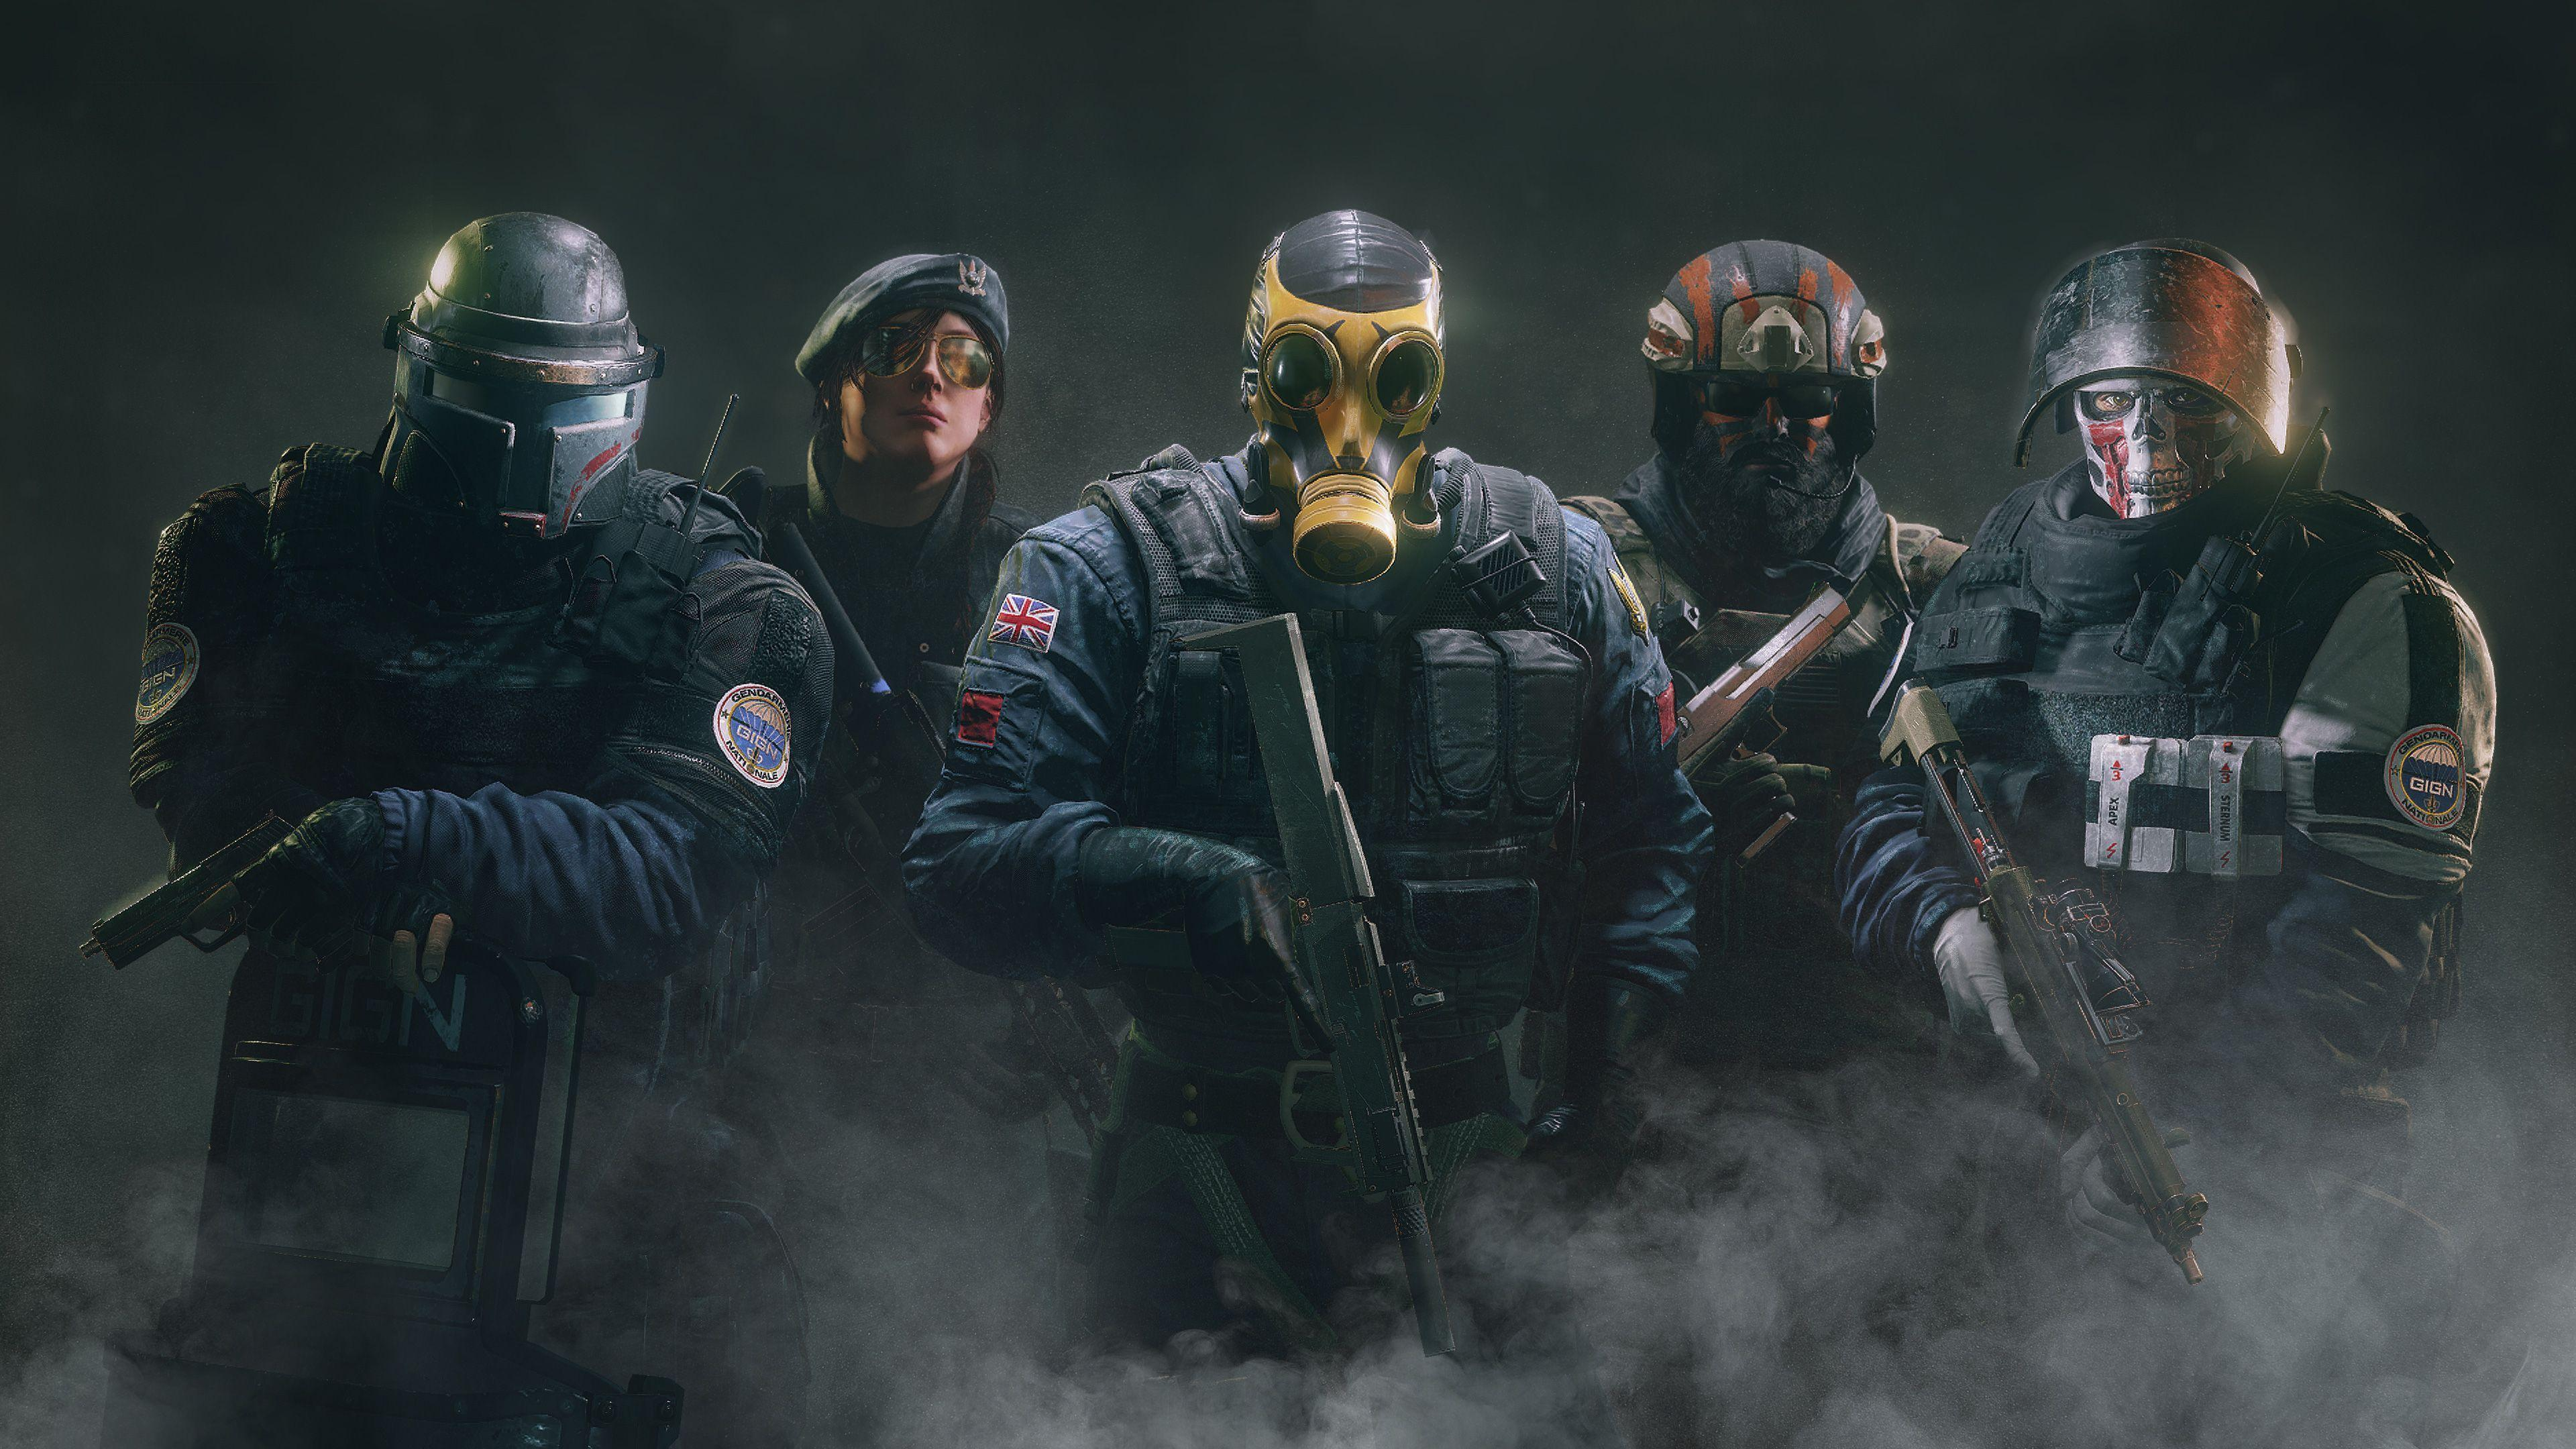 Rainbow Six Siege Wallpapers - Wallpaper Cave